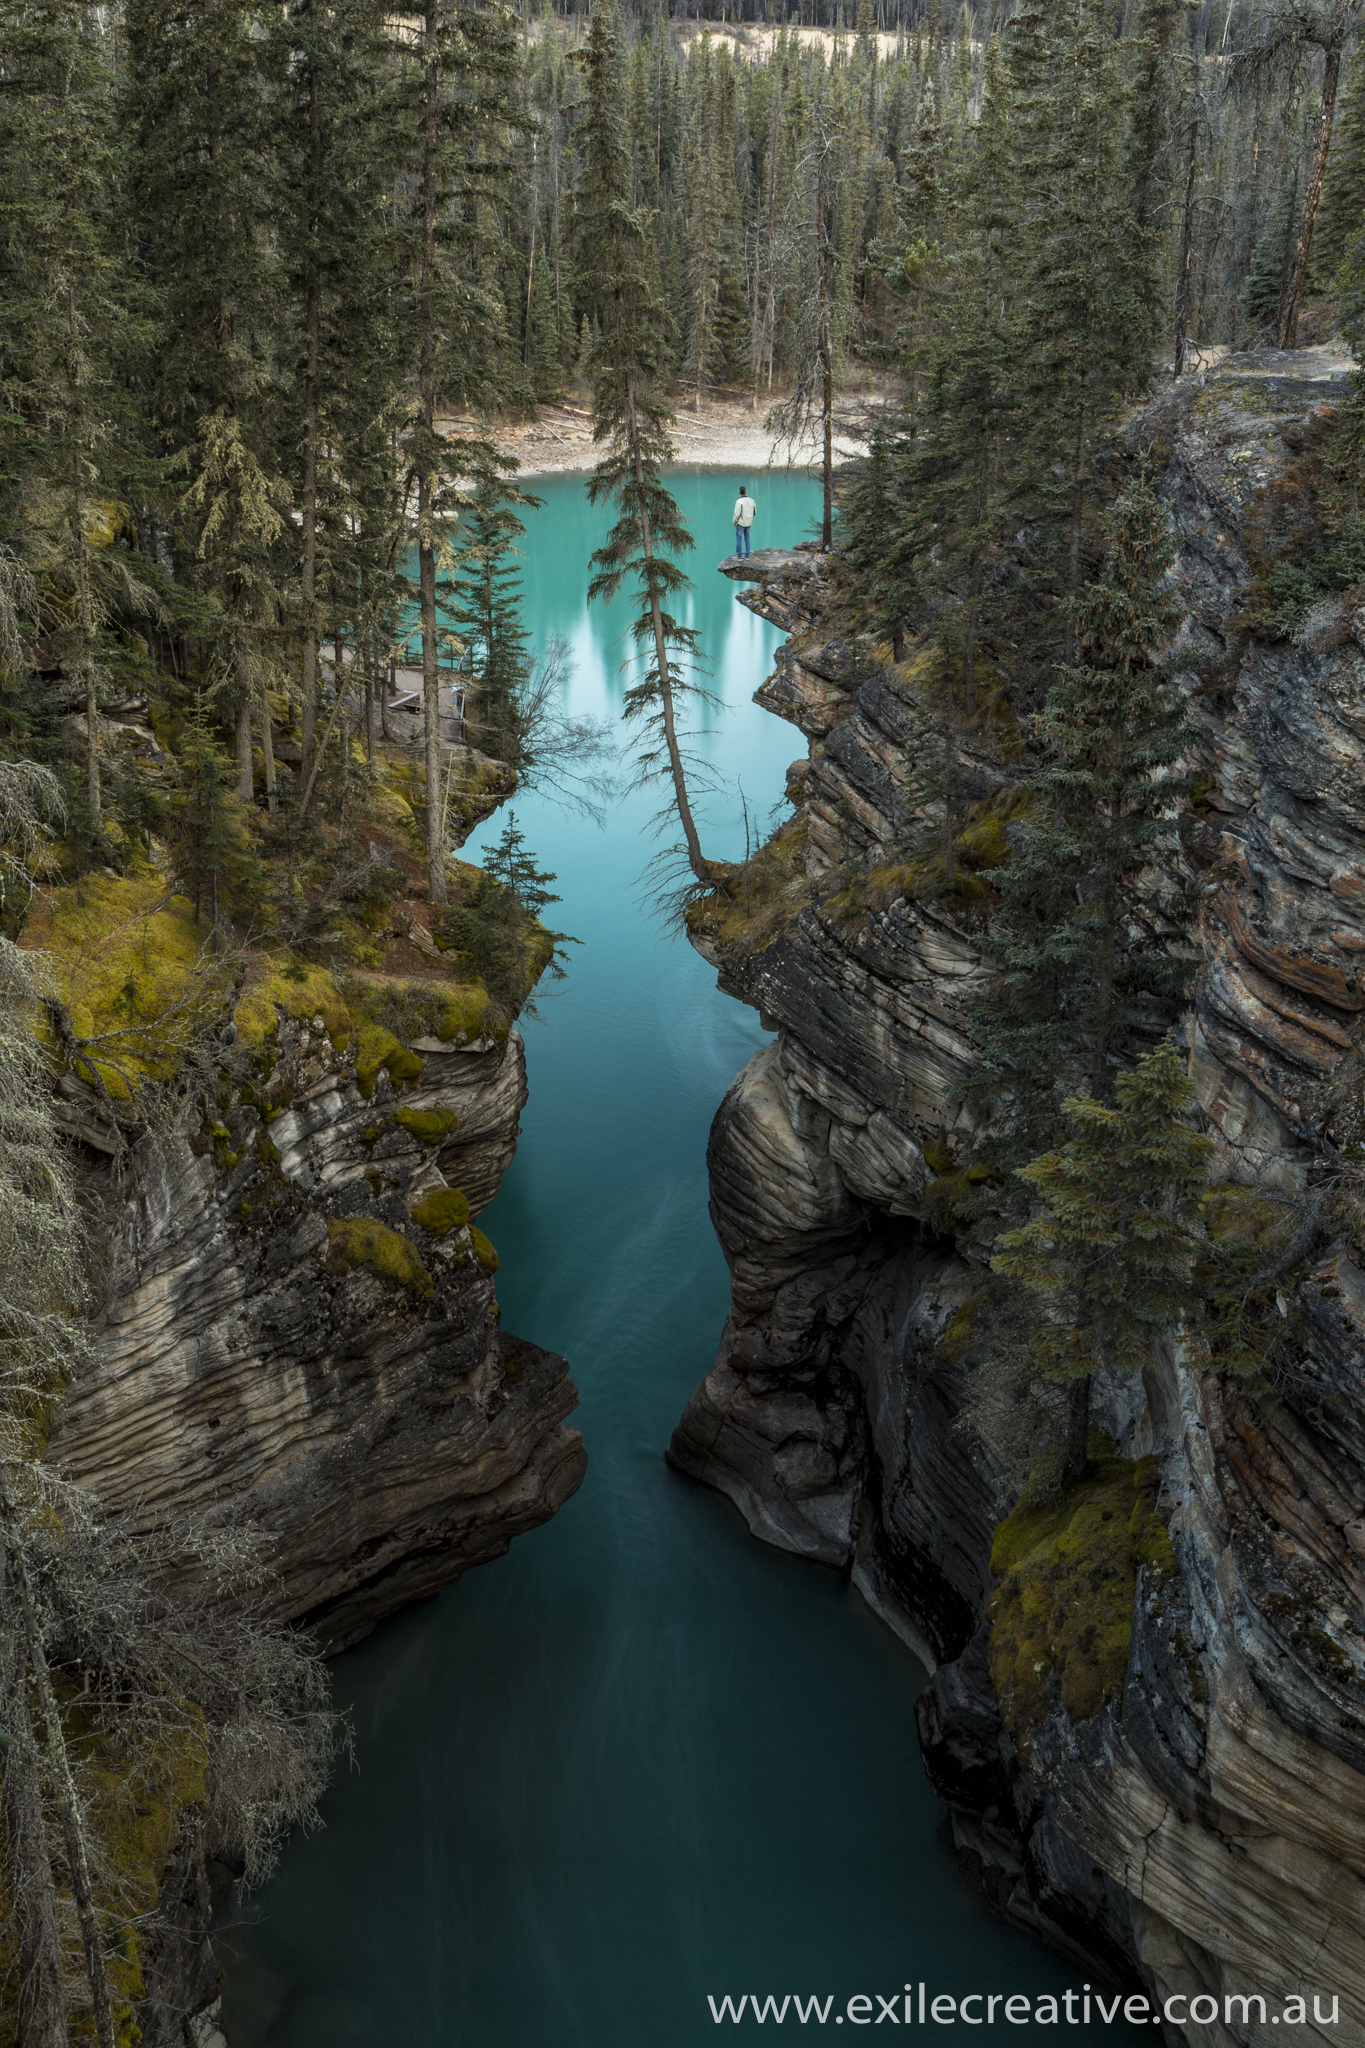 The selfie I've wanted for years - Athabasca Falls